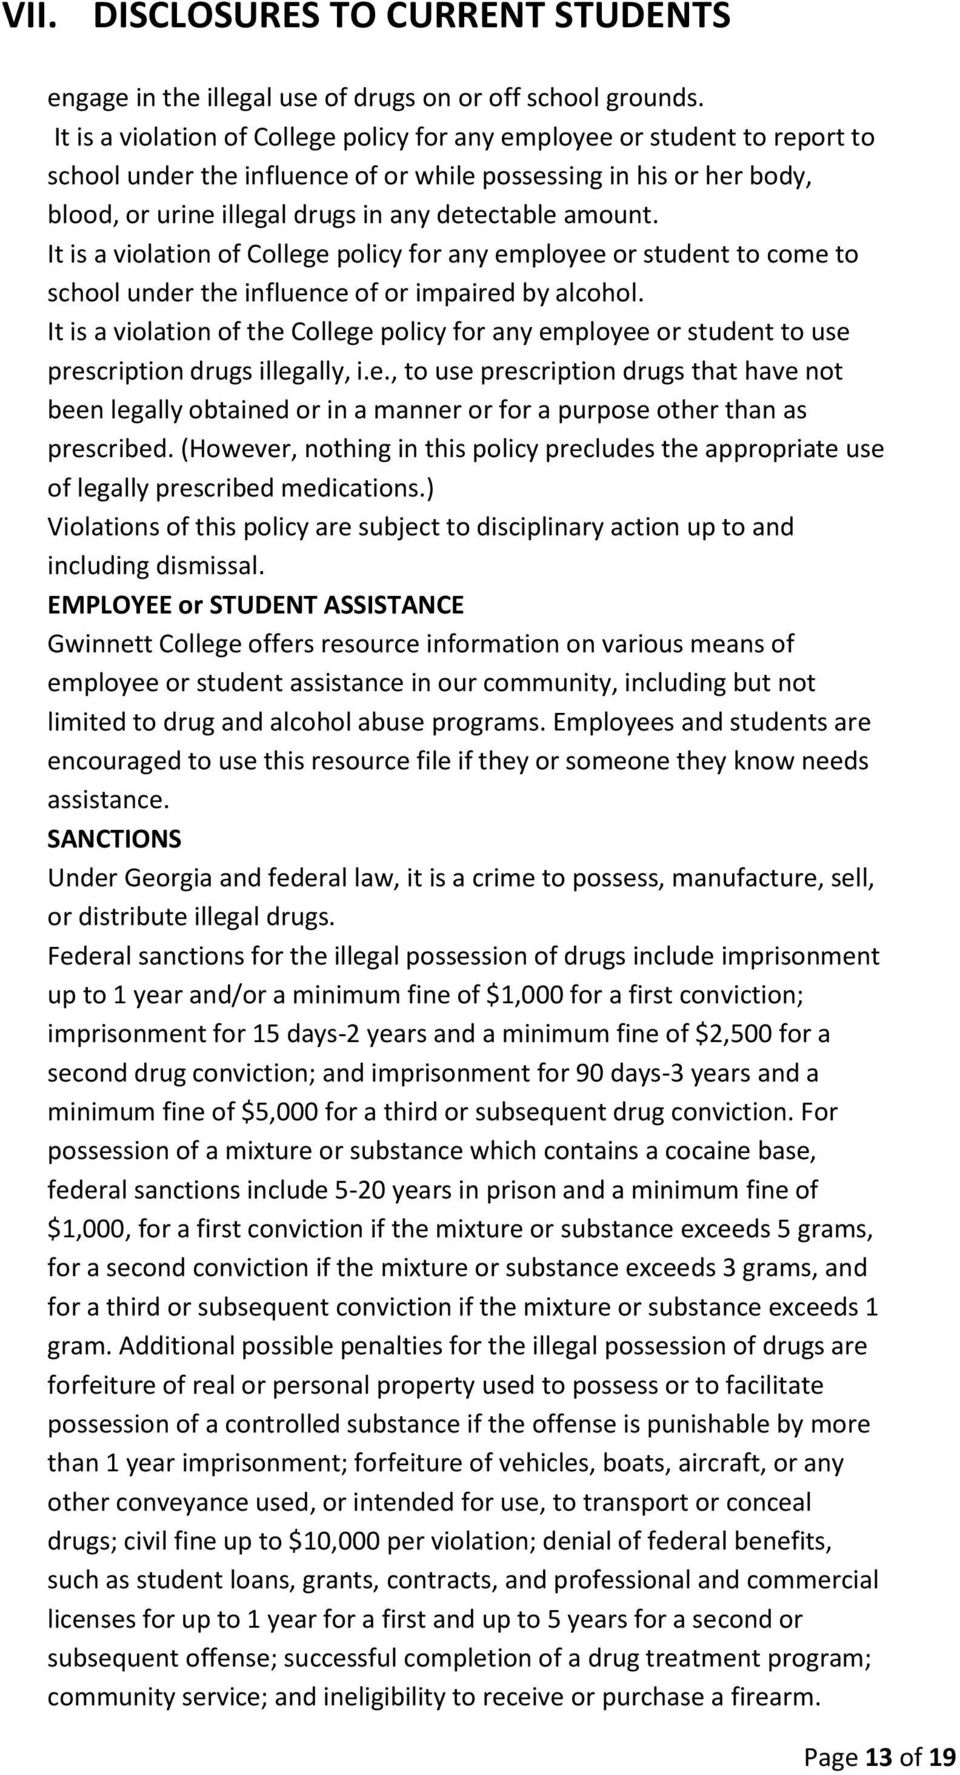 amount. It is a violation of College policy for any employee or student to come to school under the influence of or impaired by alcohol.